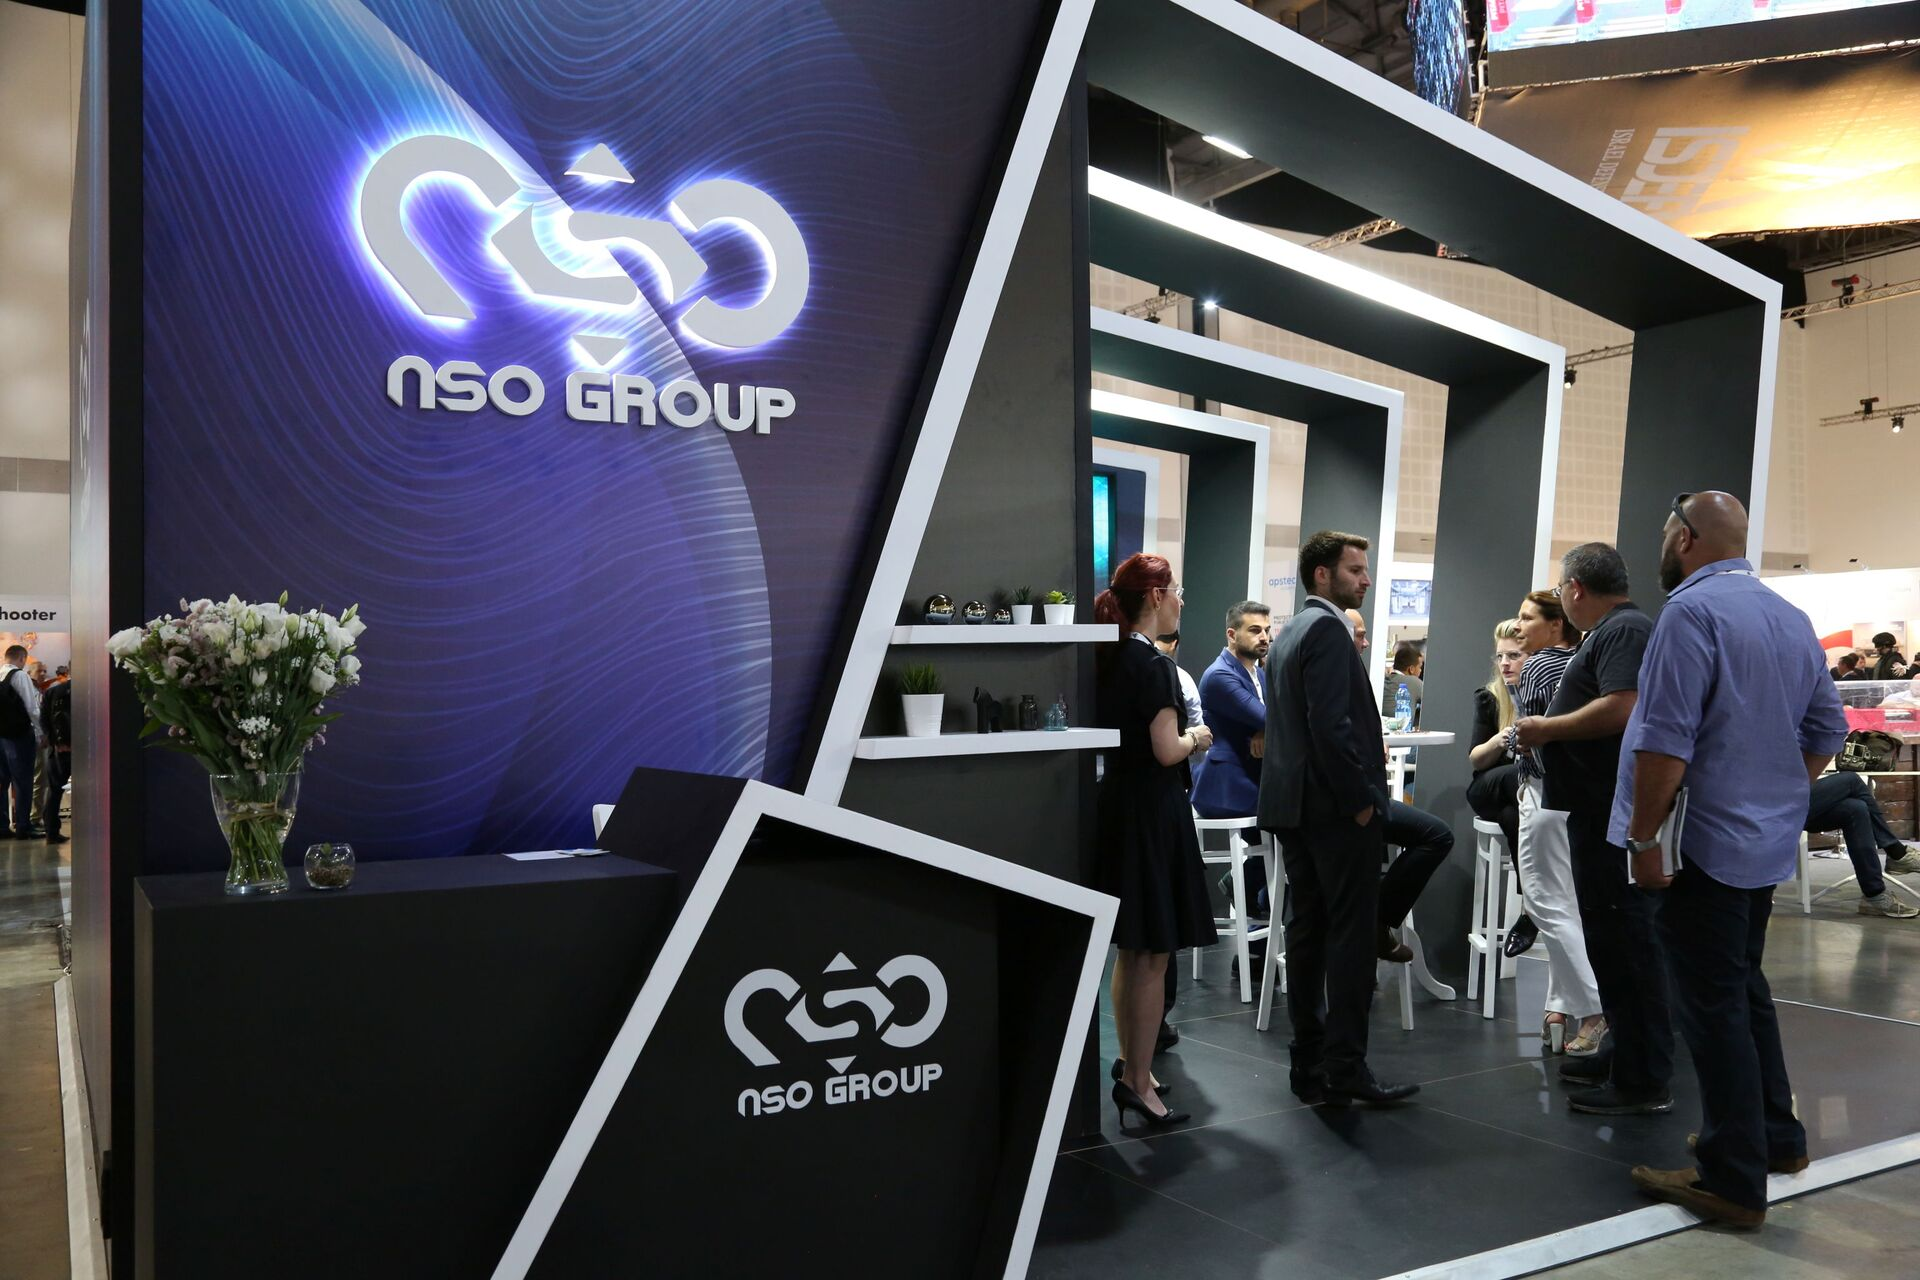 Israeli cyber firm NSO Group's exhibition stand is seen at ISDEF 2019, an international defence and homeland security expo, in Tel Aviv, Israel June 4, 2019. Picture taken June 4, 2019. - Sputnik International, 1920, 07.09.2021